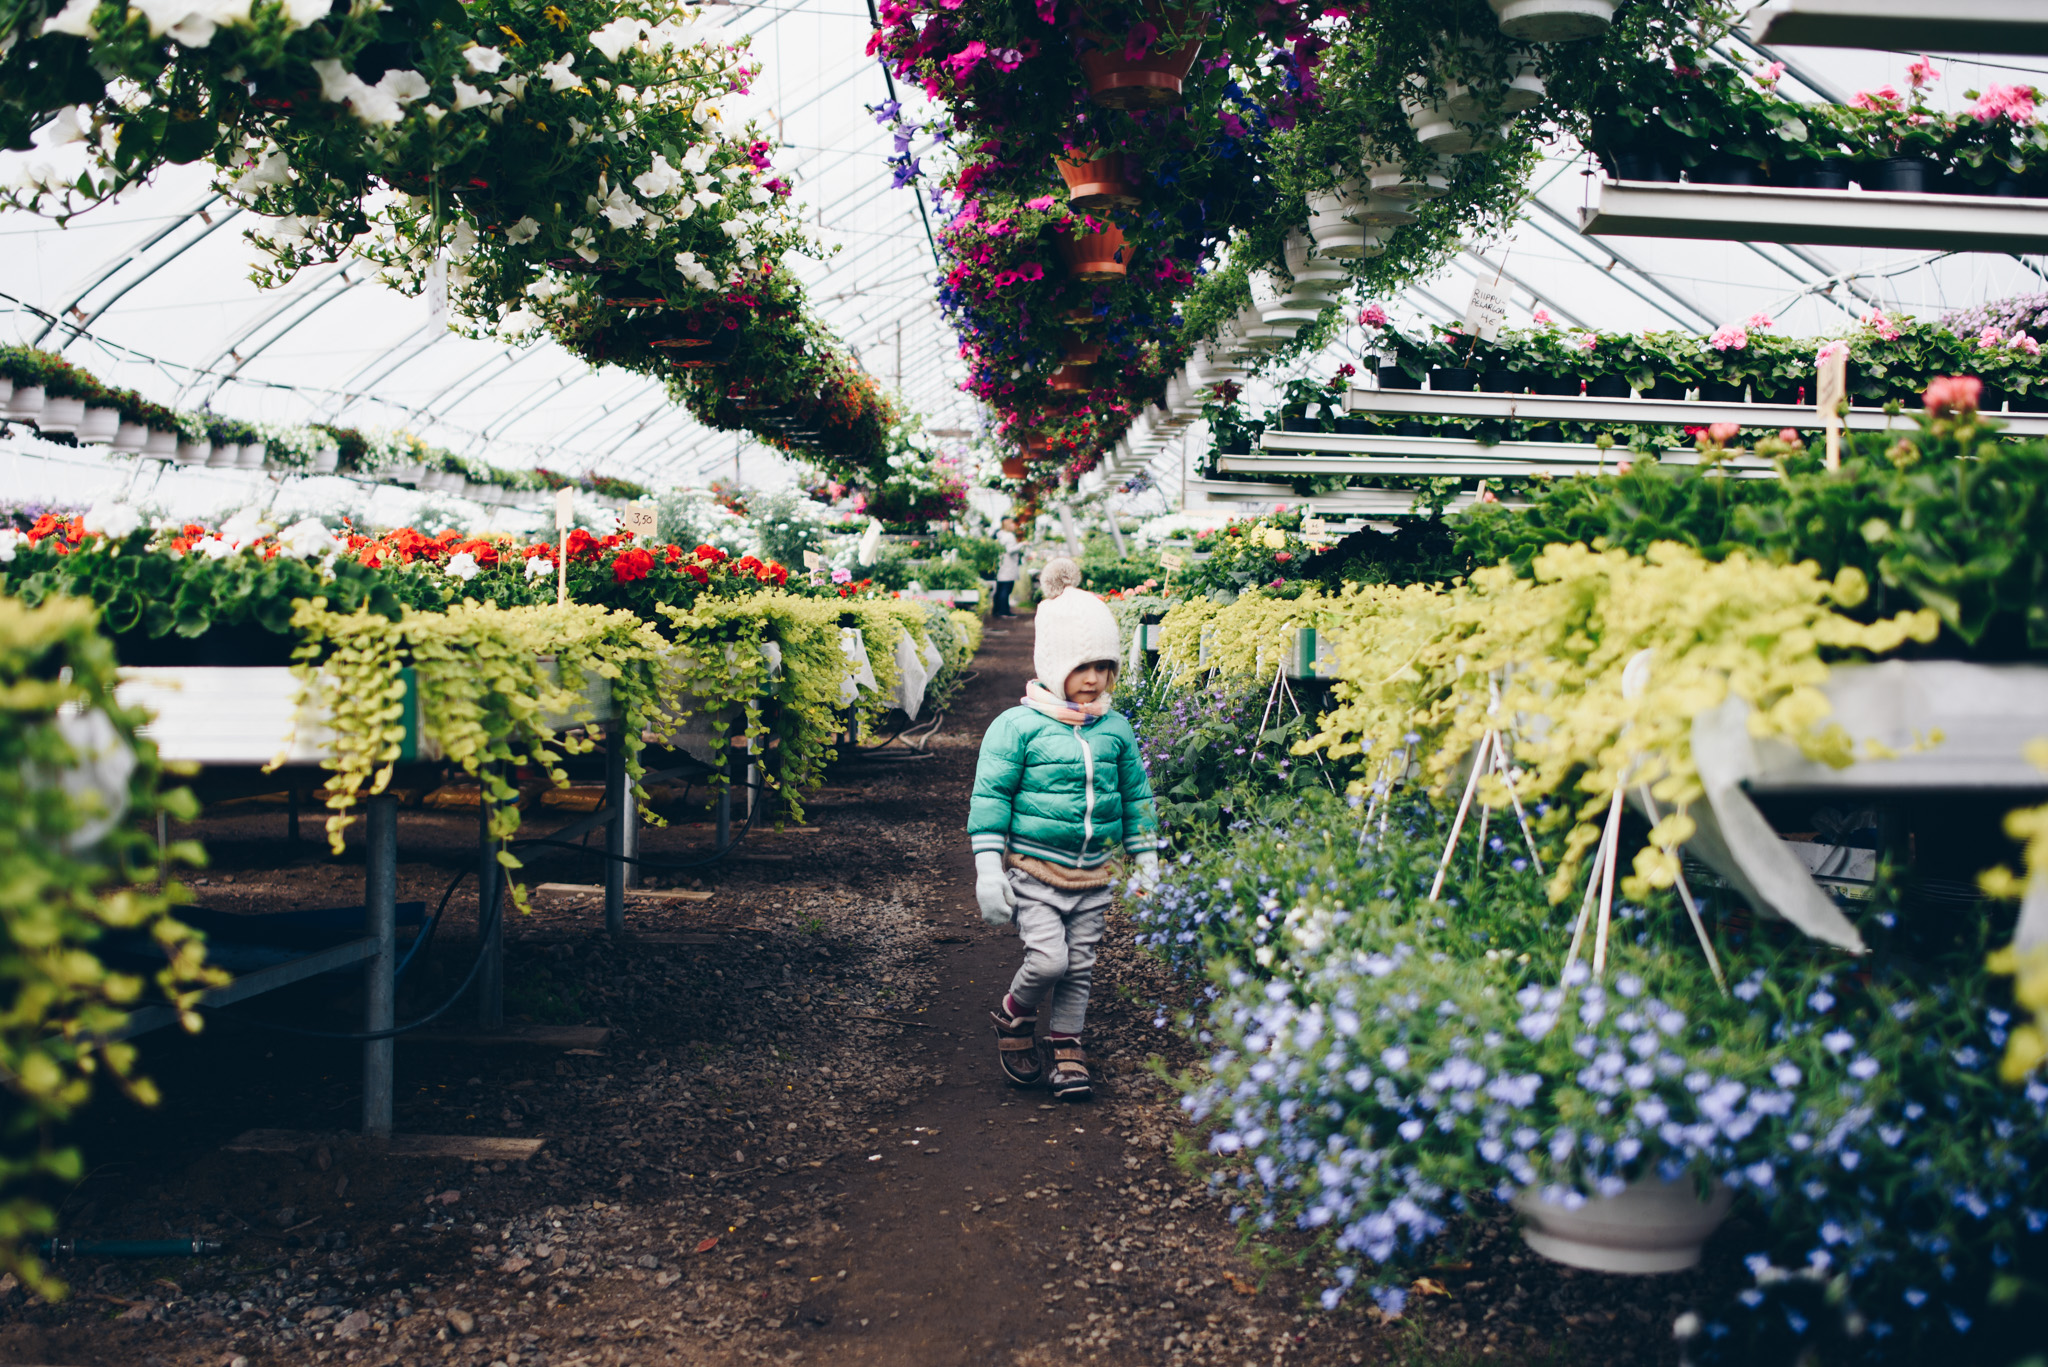 Child at the flowers market